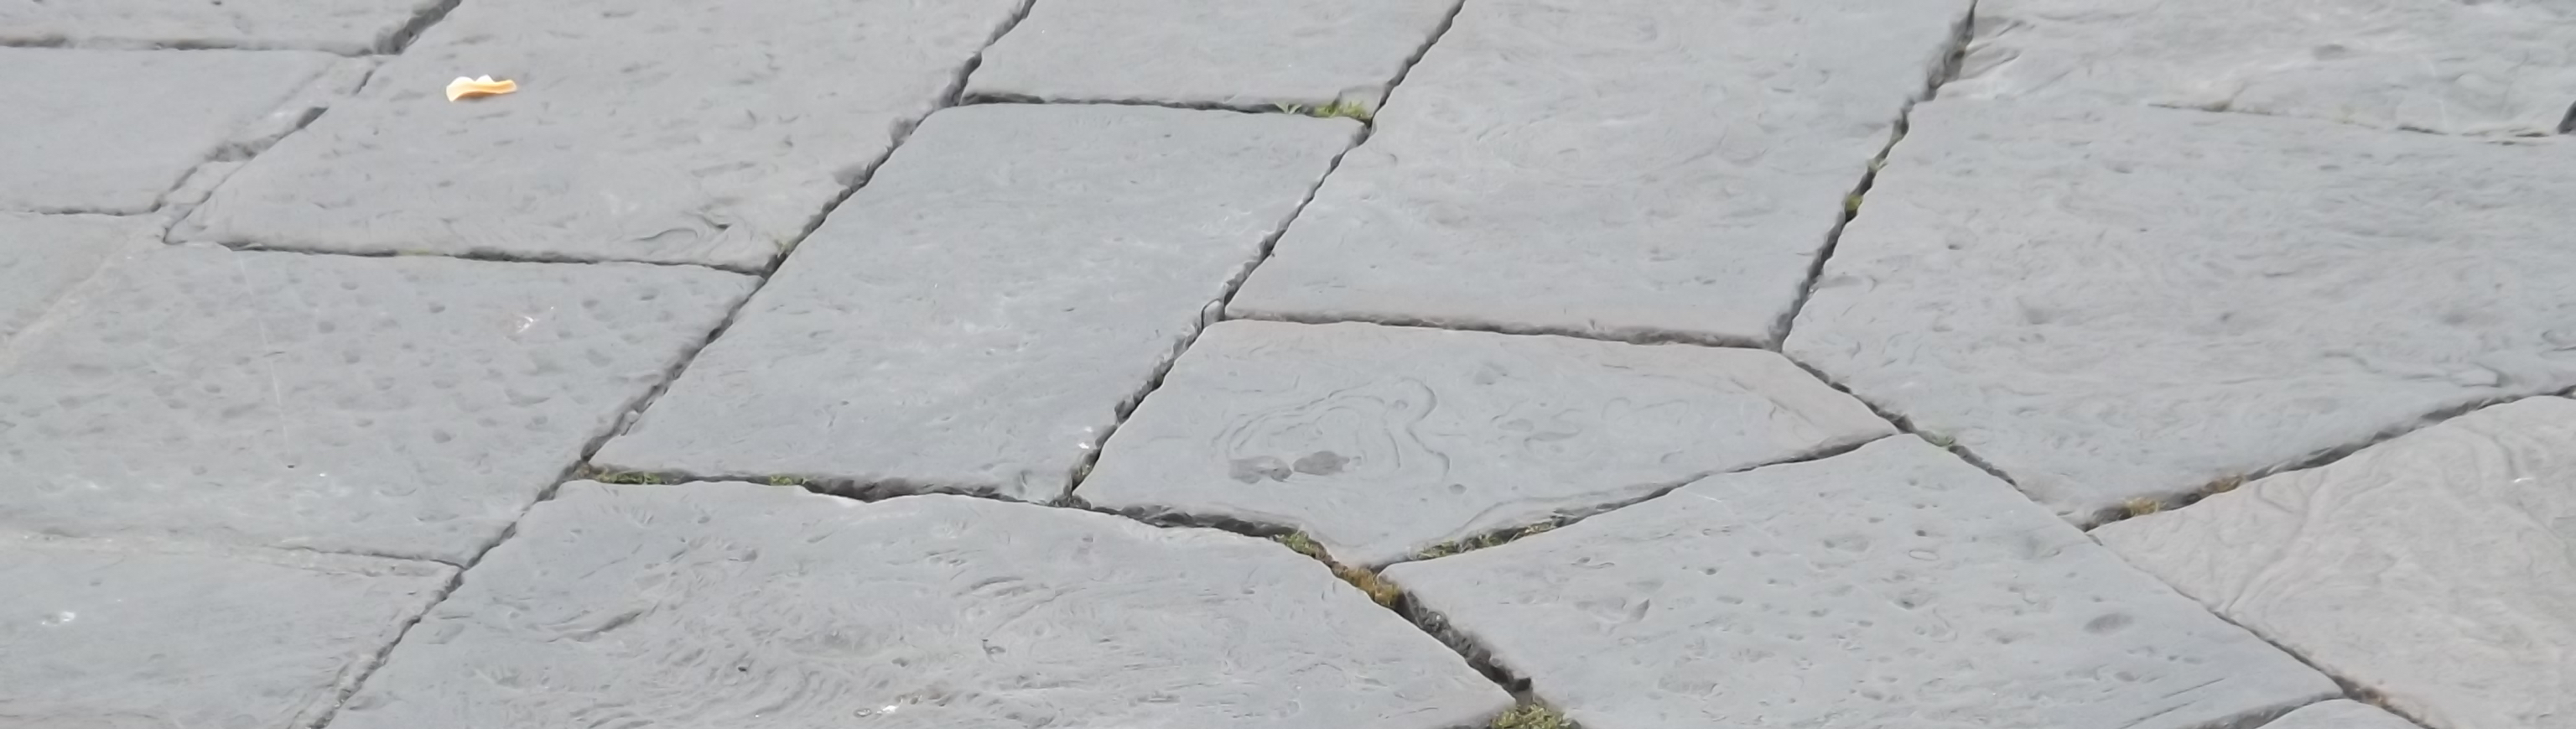 close-up of stone